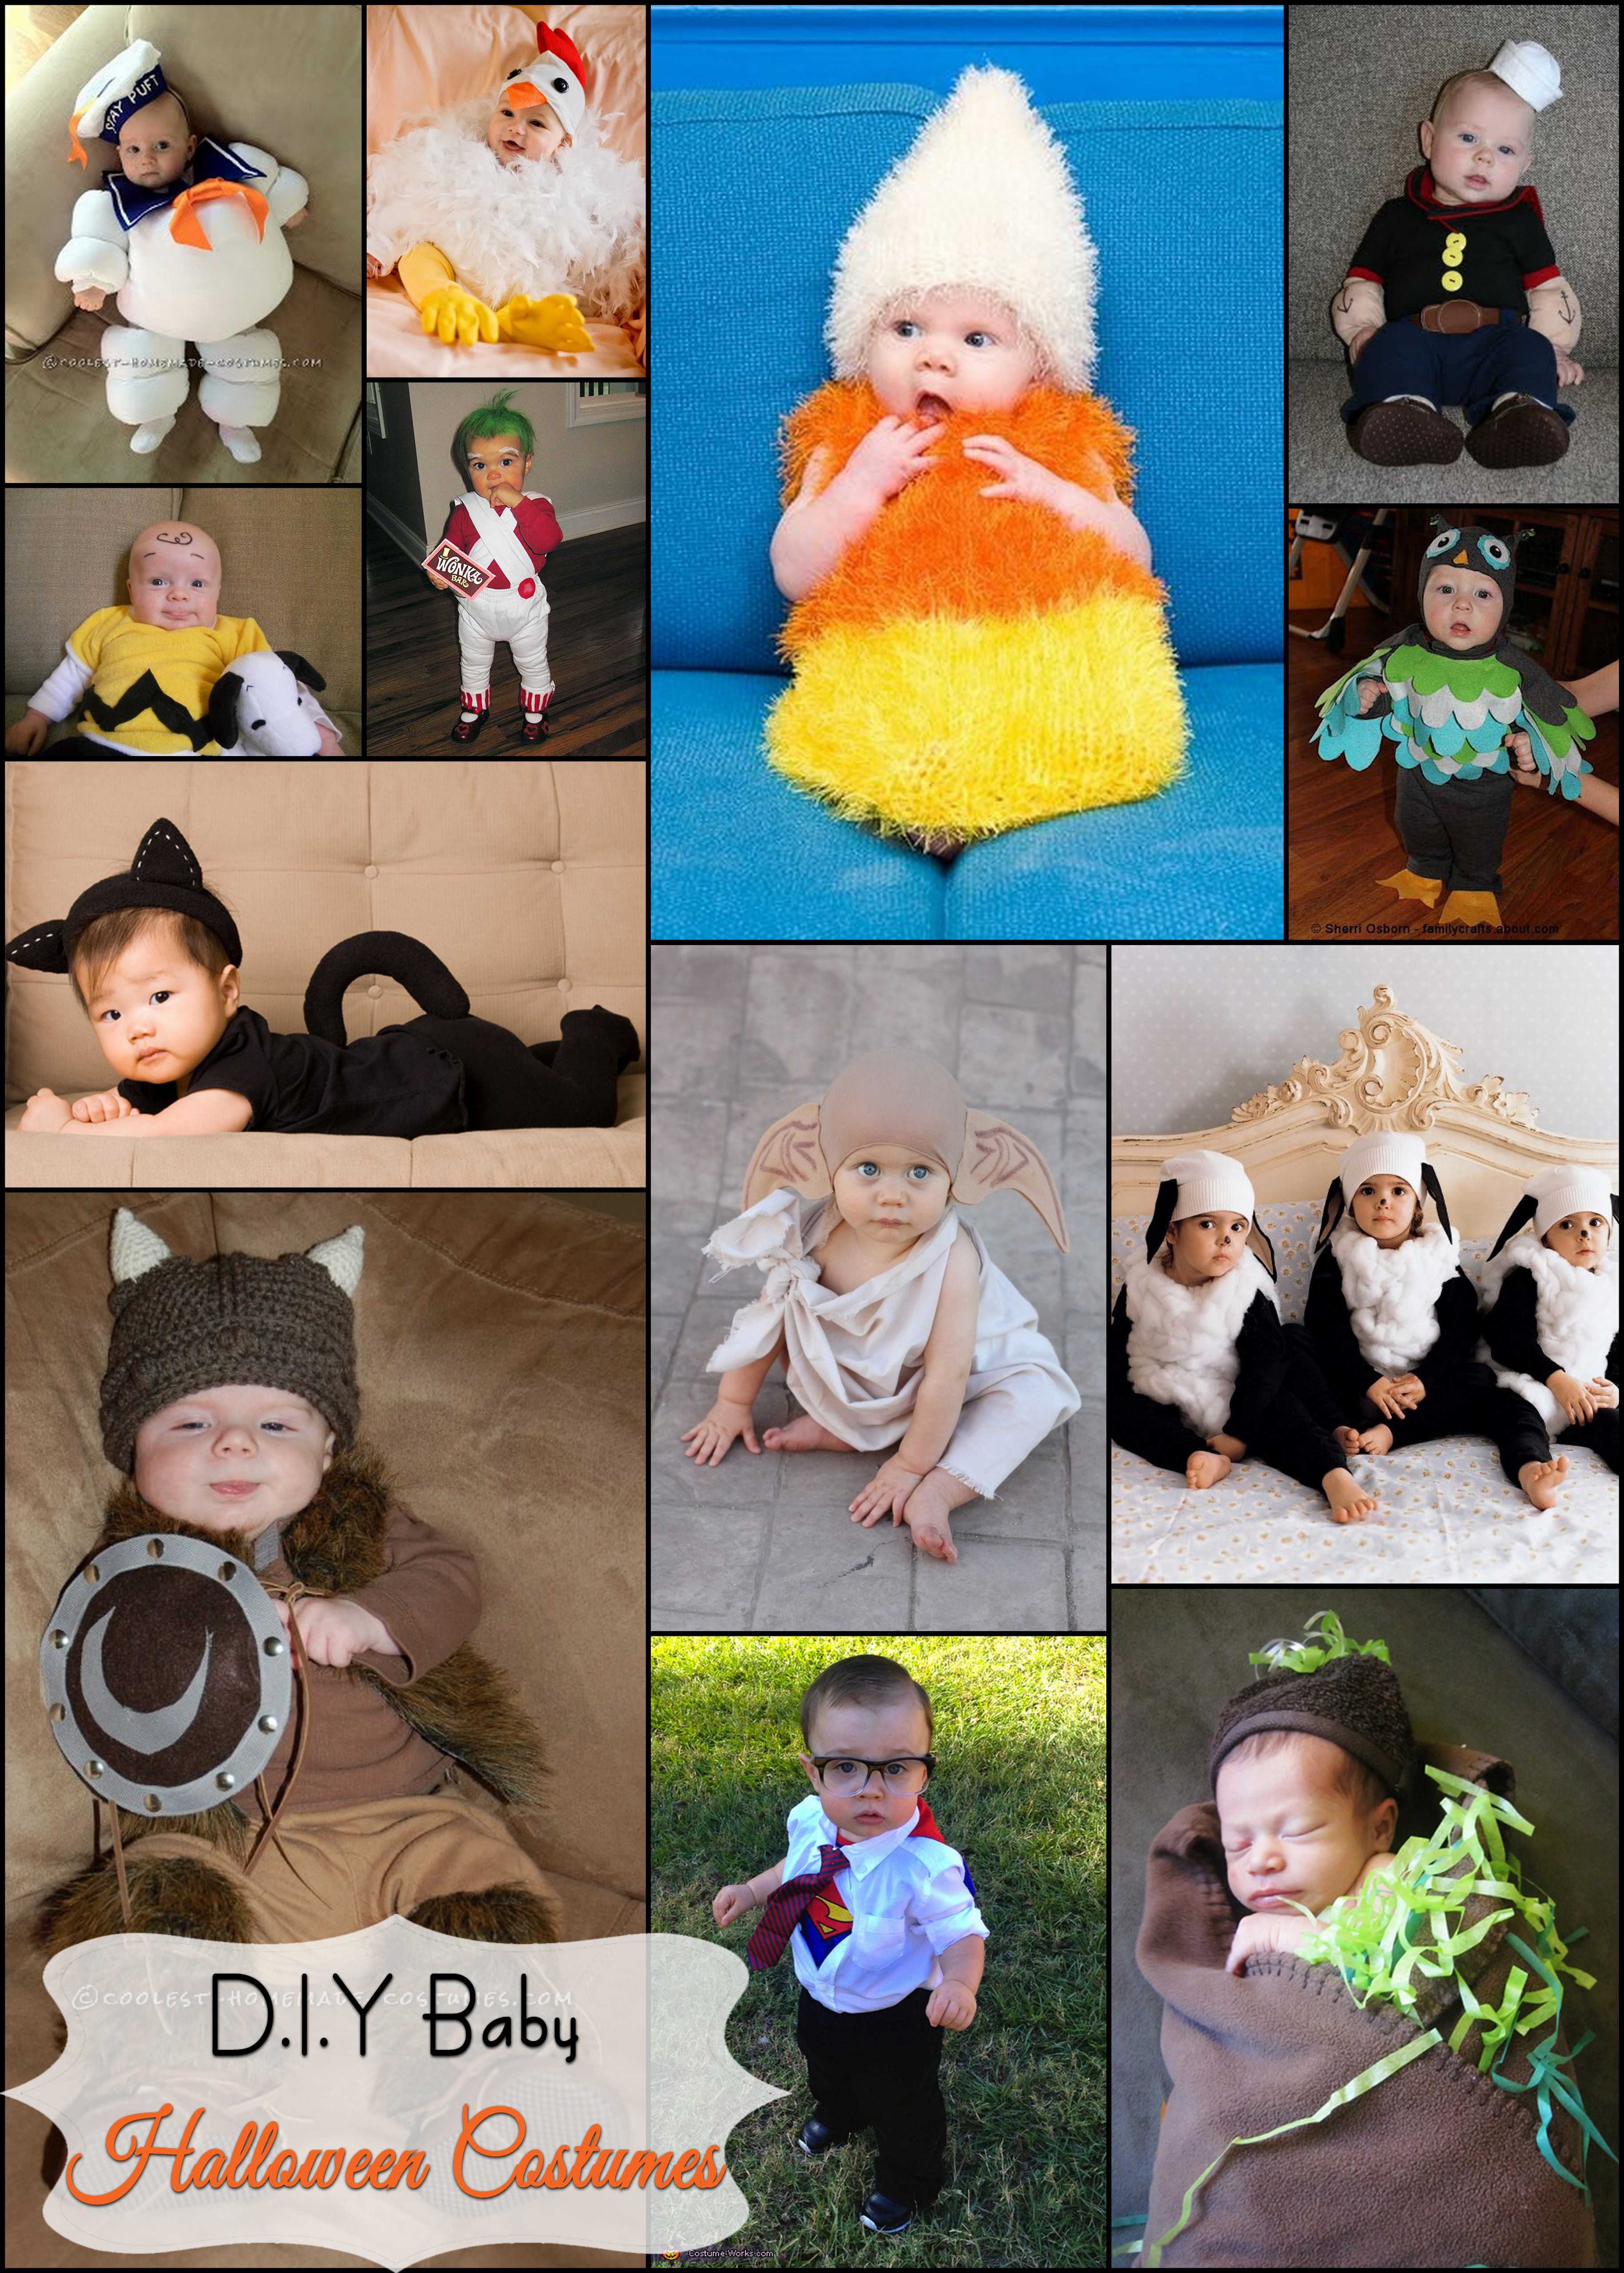 Best ideas about DIY Baby Costume . Save or Pin D I Y Baby Halloween Costumes Now.